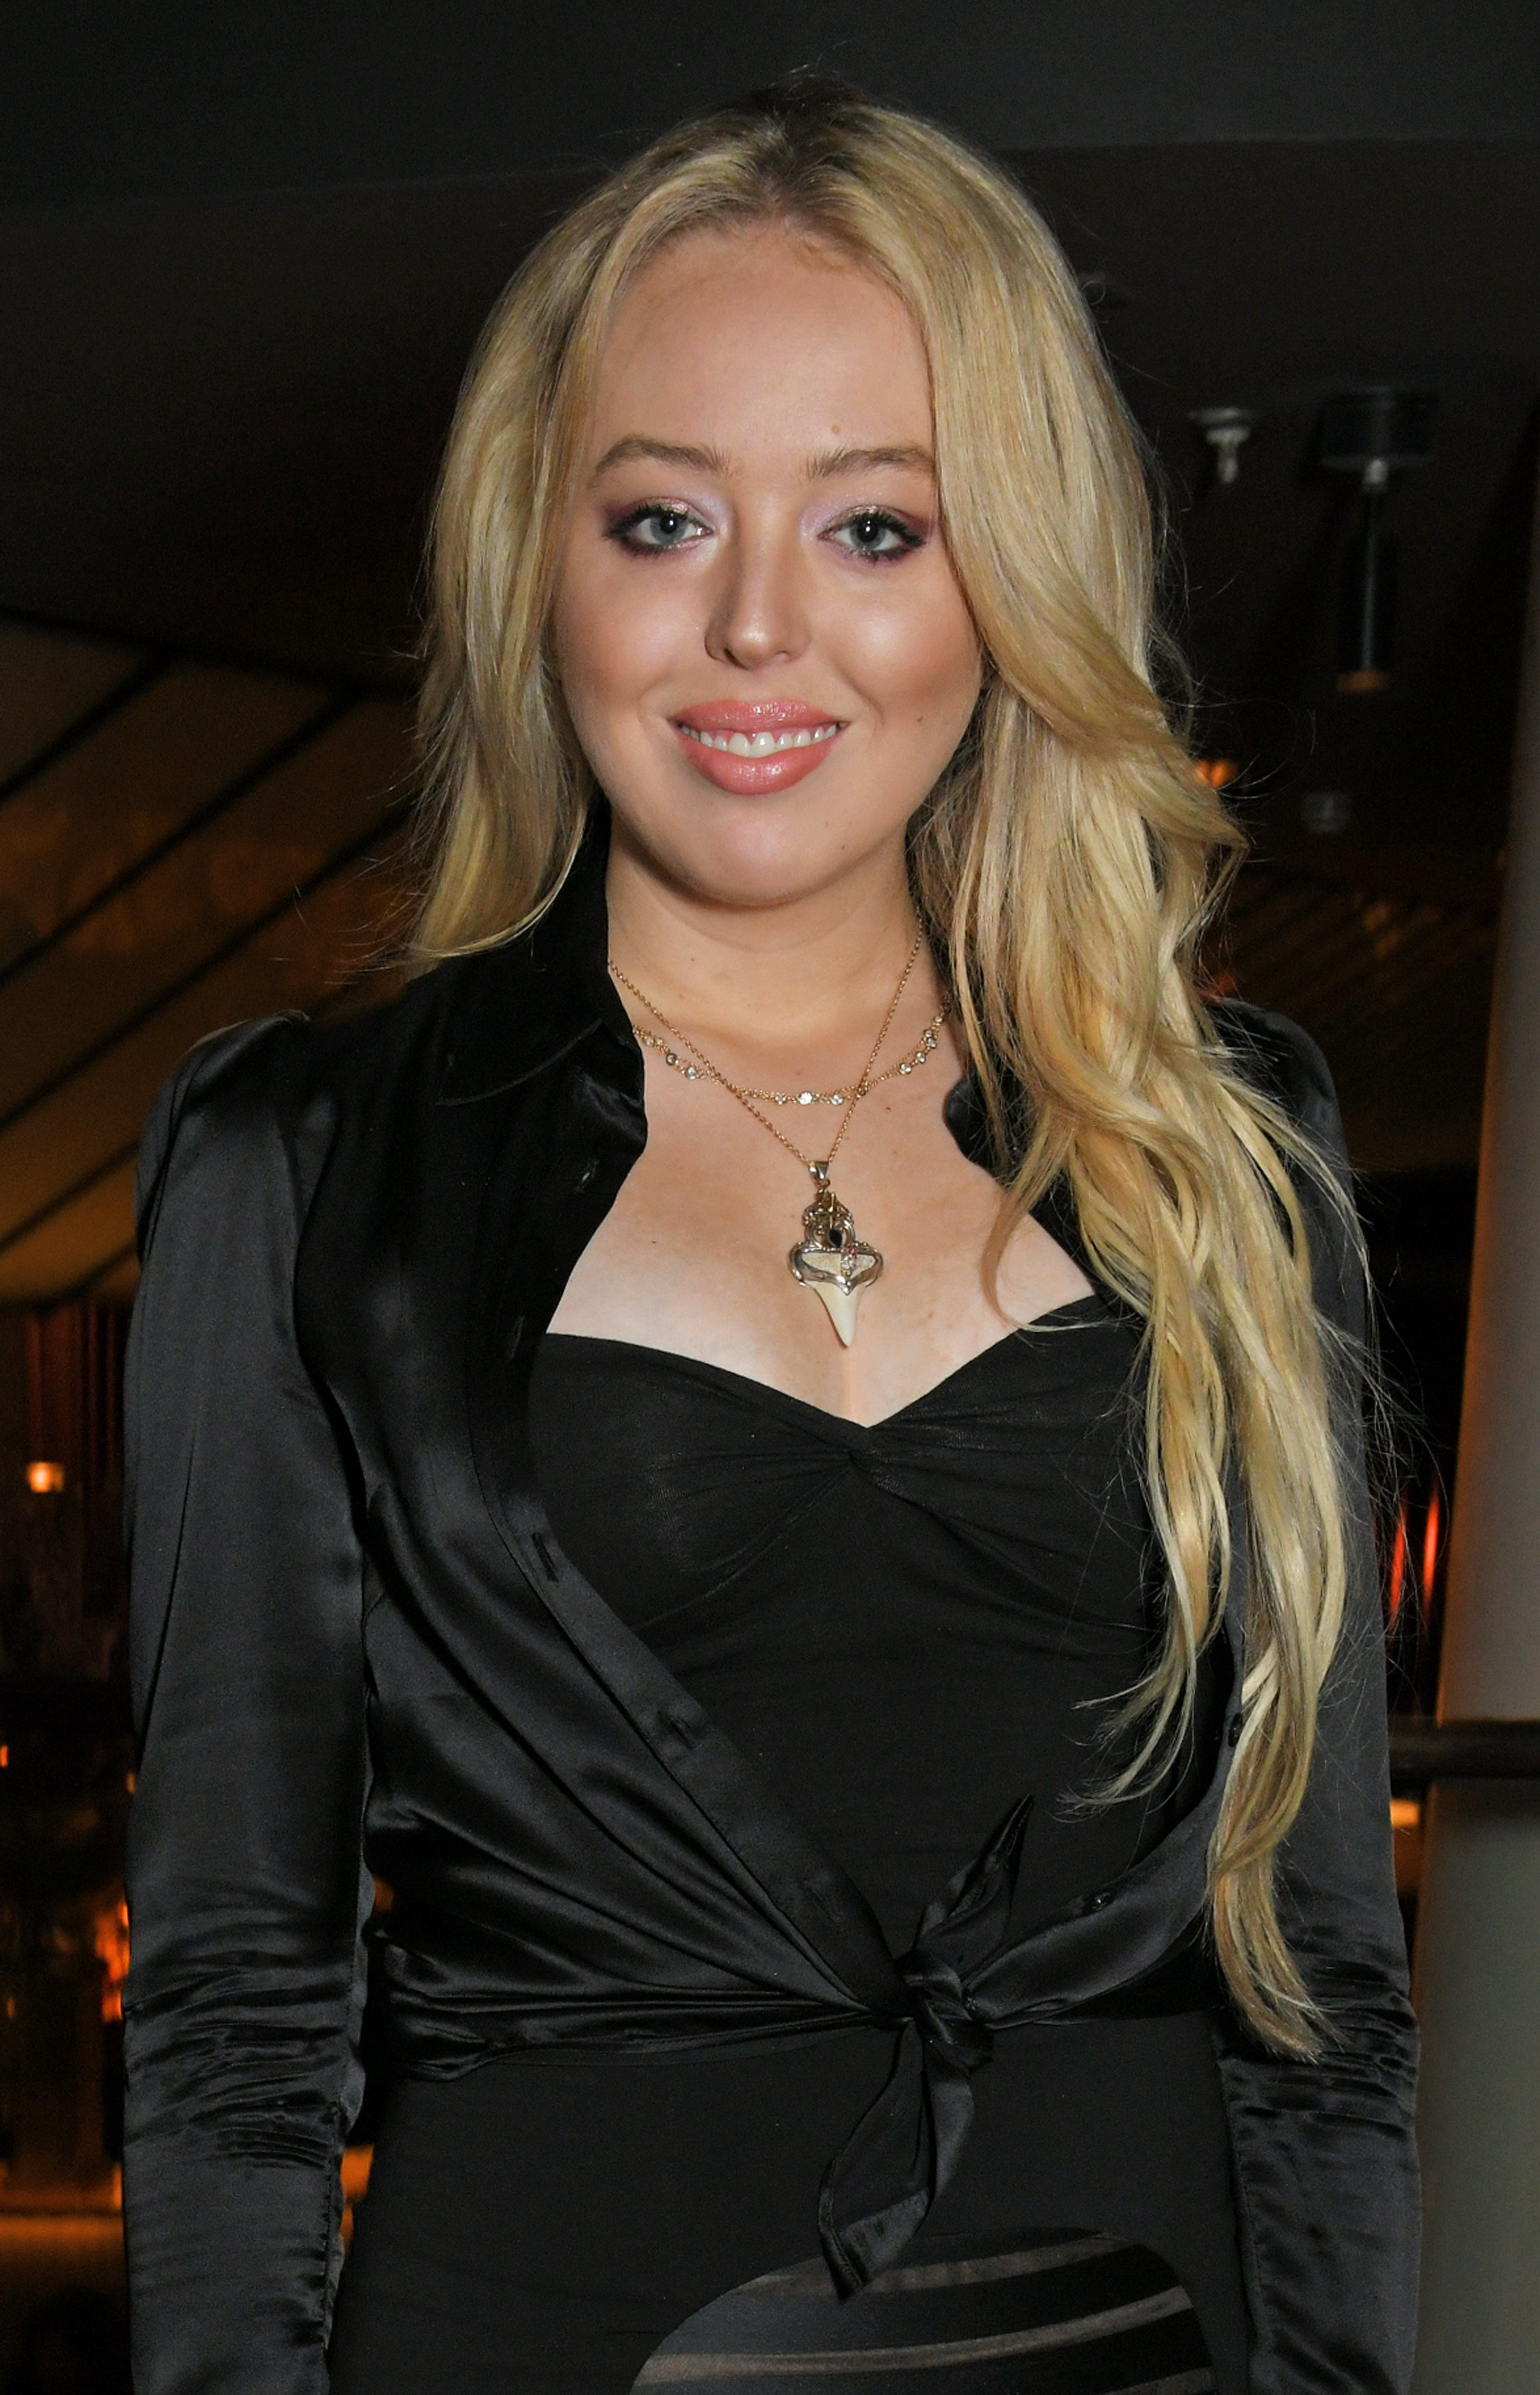 Tiffany Trump poses at dinner at Quaglino's on July 23, 2018, in London, England.   Source: Getty Images.